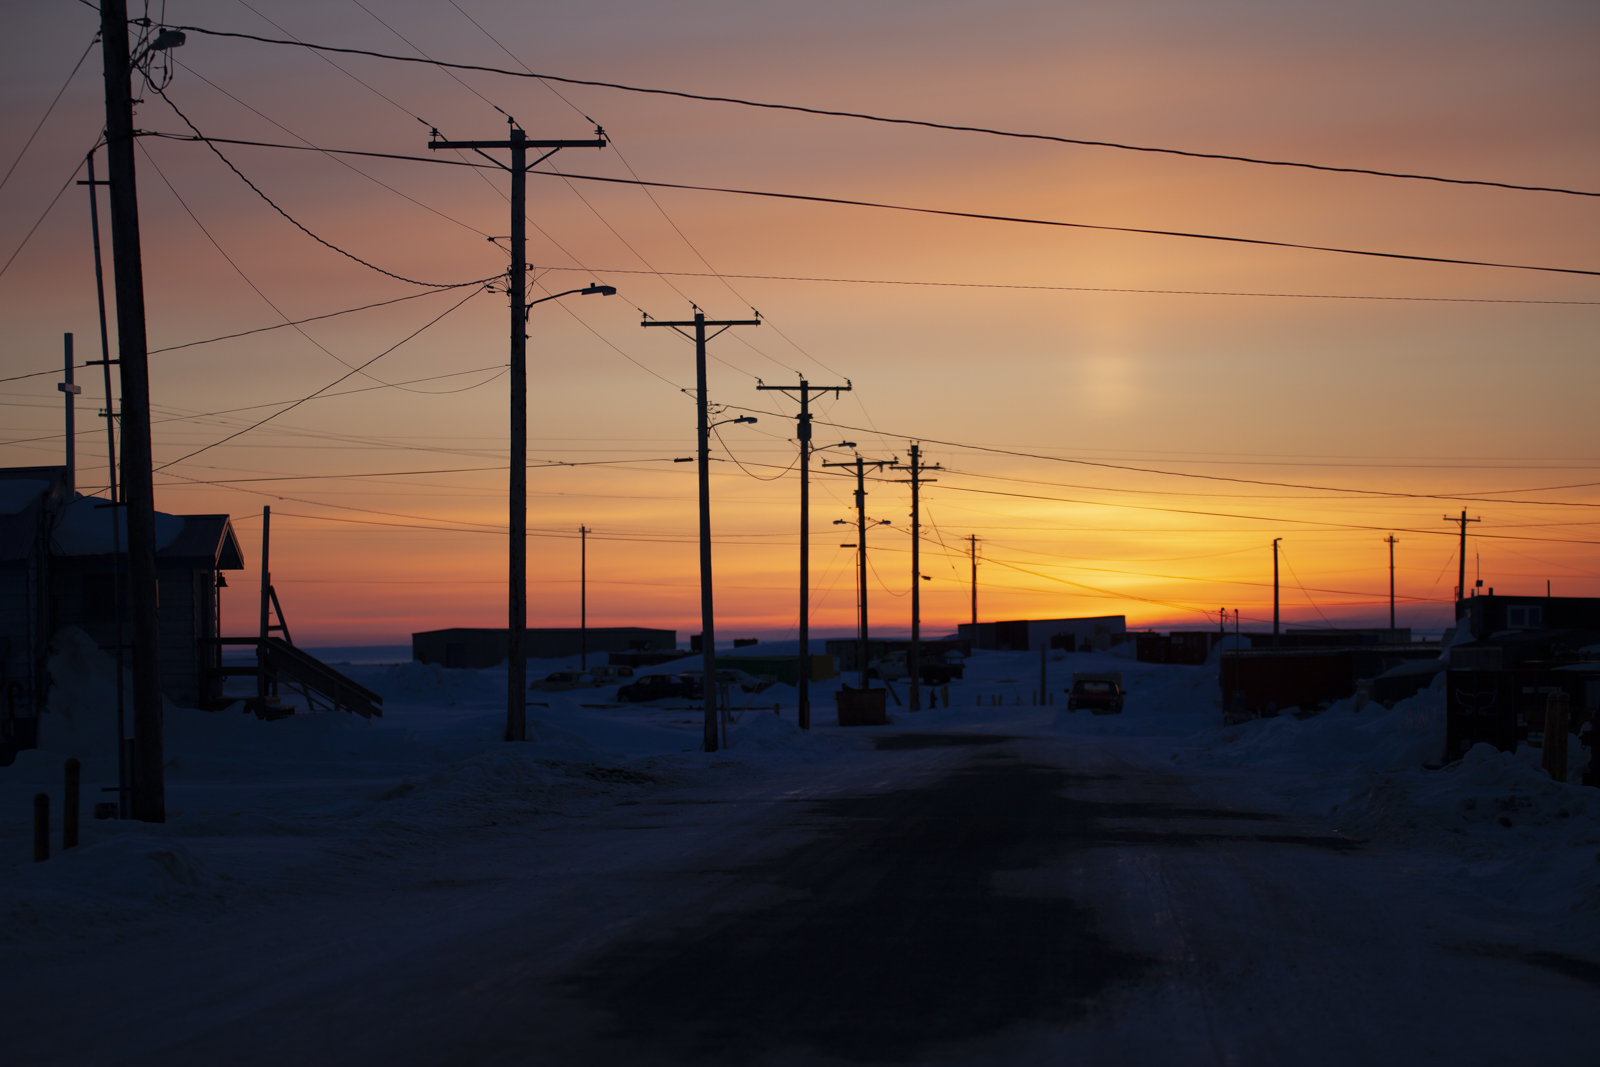 A long spring sunset in Kaktovik, 11 pm.